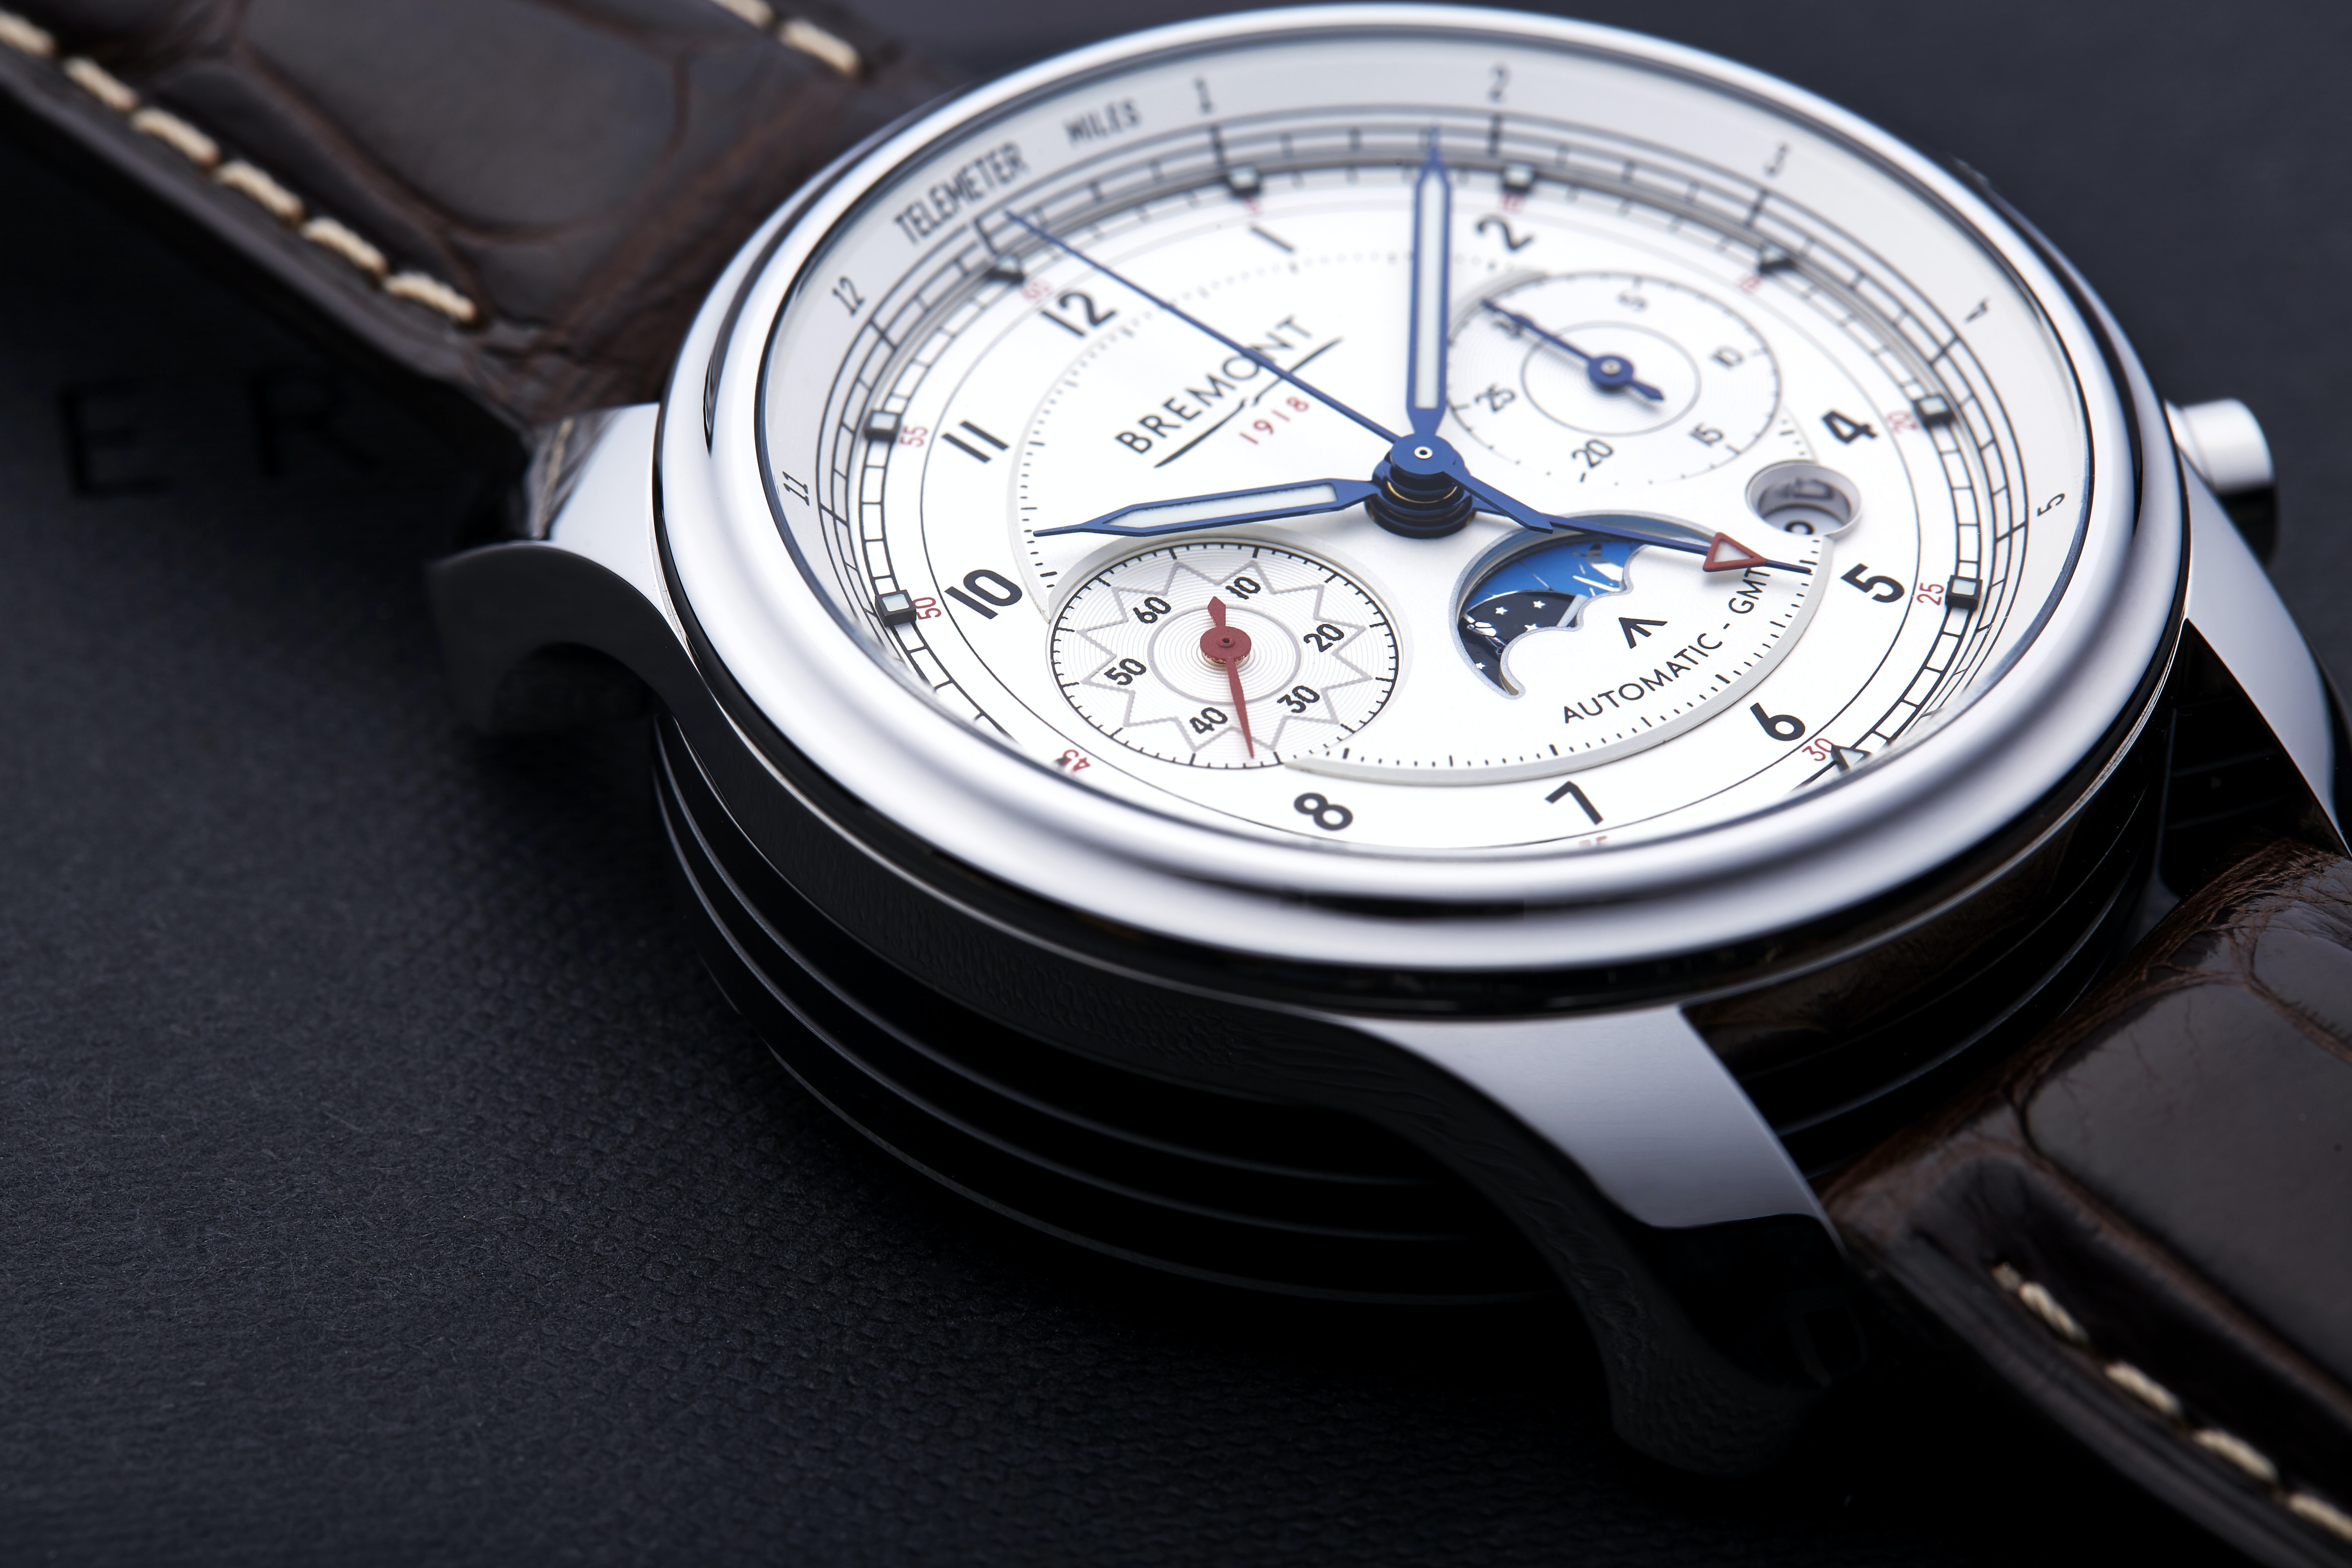 Introducing: The Bremont 1918 Limited Edition Chronograph Introducing: The Bremont 1918 Limited Edition Chronograph Bremont 1918RAF2910